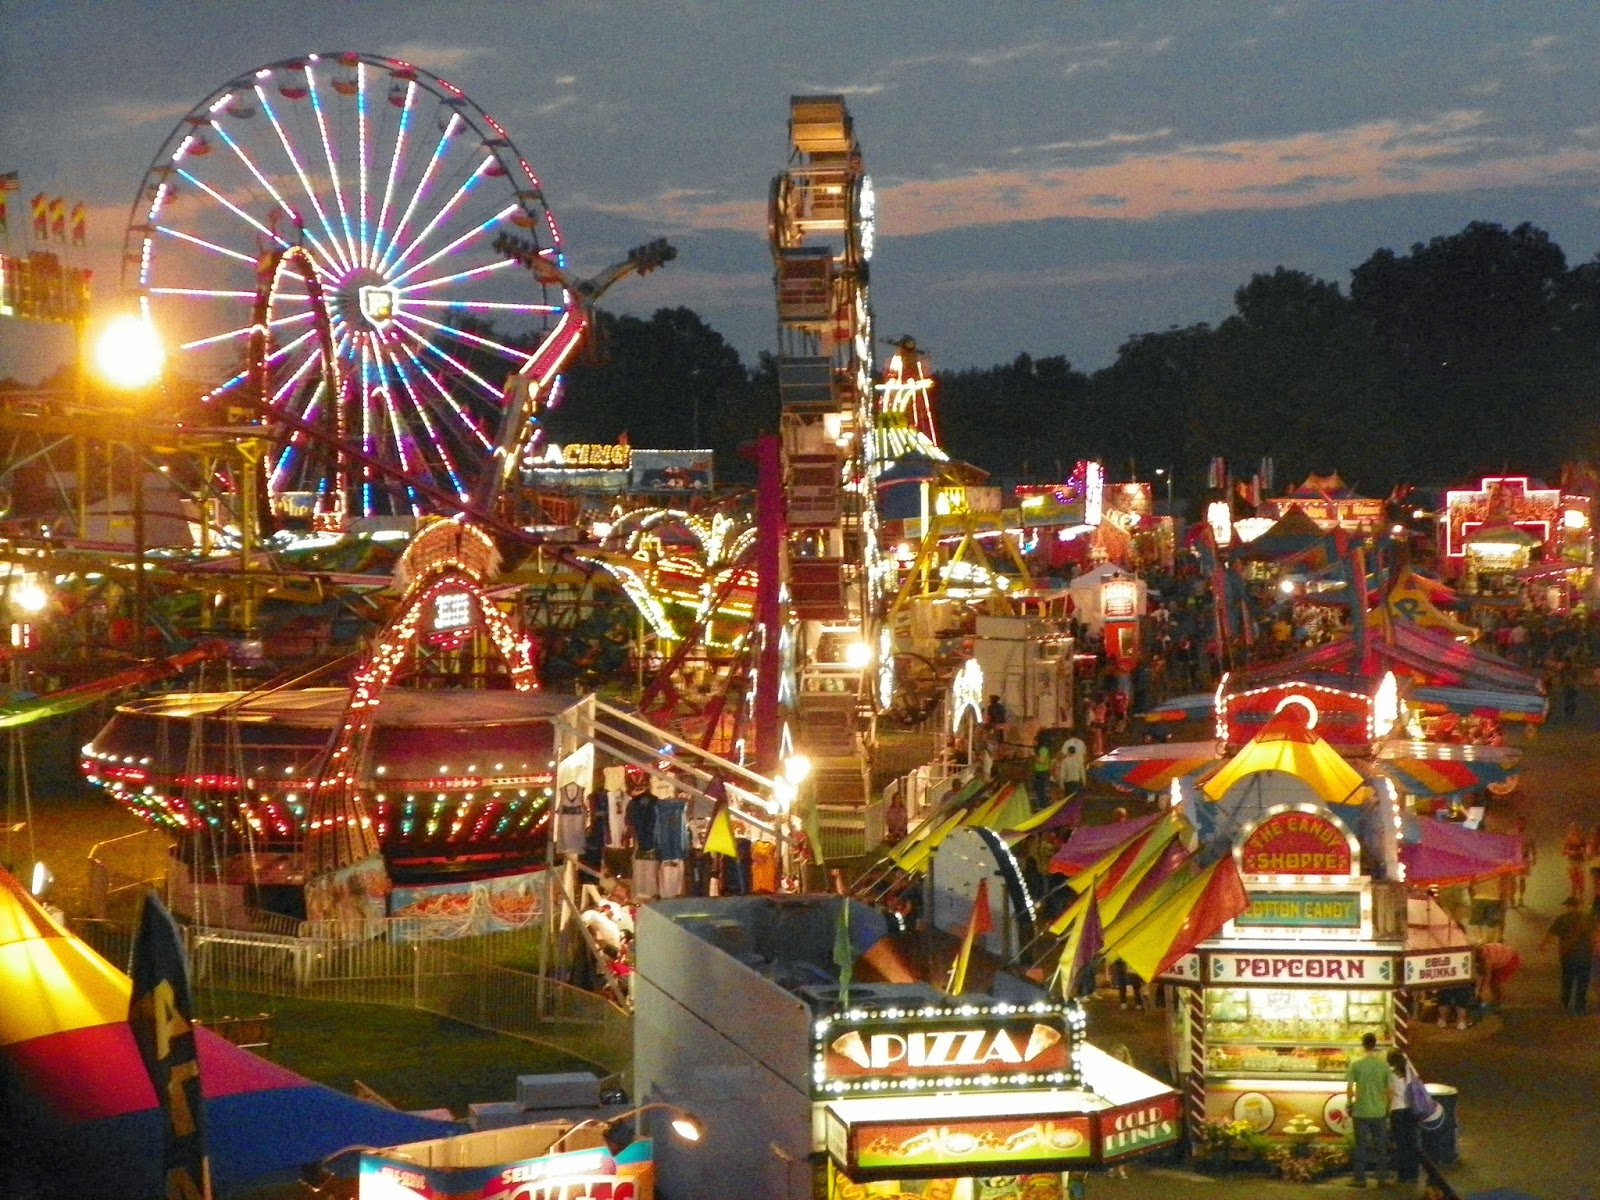 Jared Unzipped: Why I Don't Ride Carnival and Amusement ...